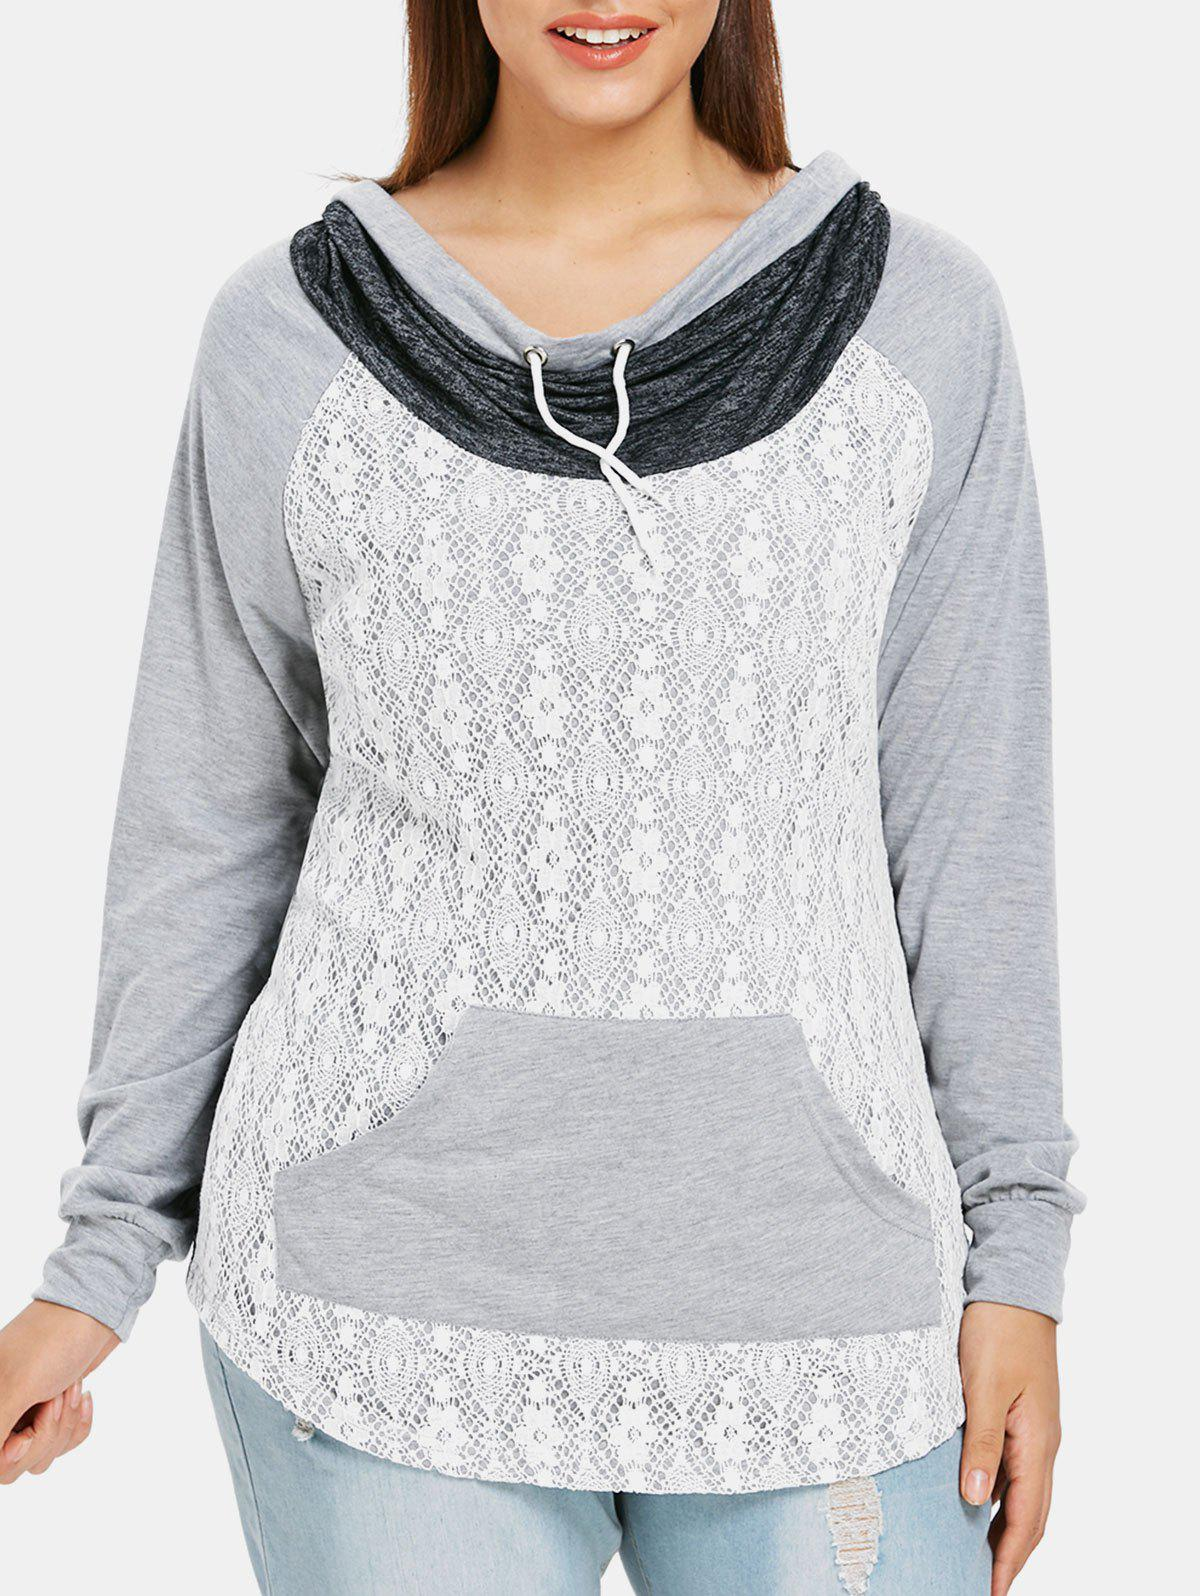 fc765387e0ac3 2018 Plus Size Lace Insert Cowl Neck T-shirt In Gray 4x